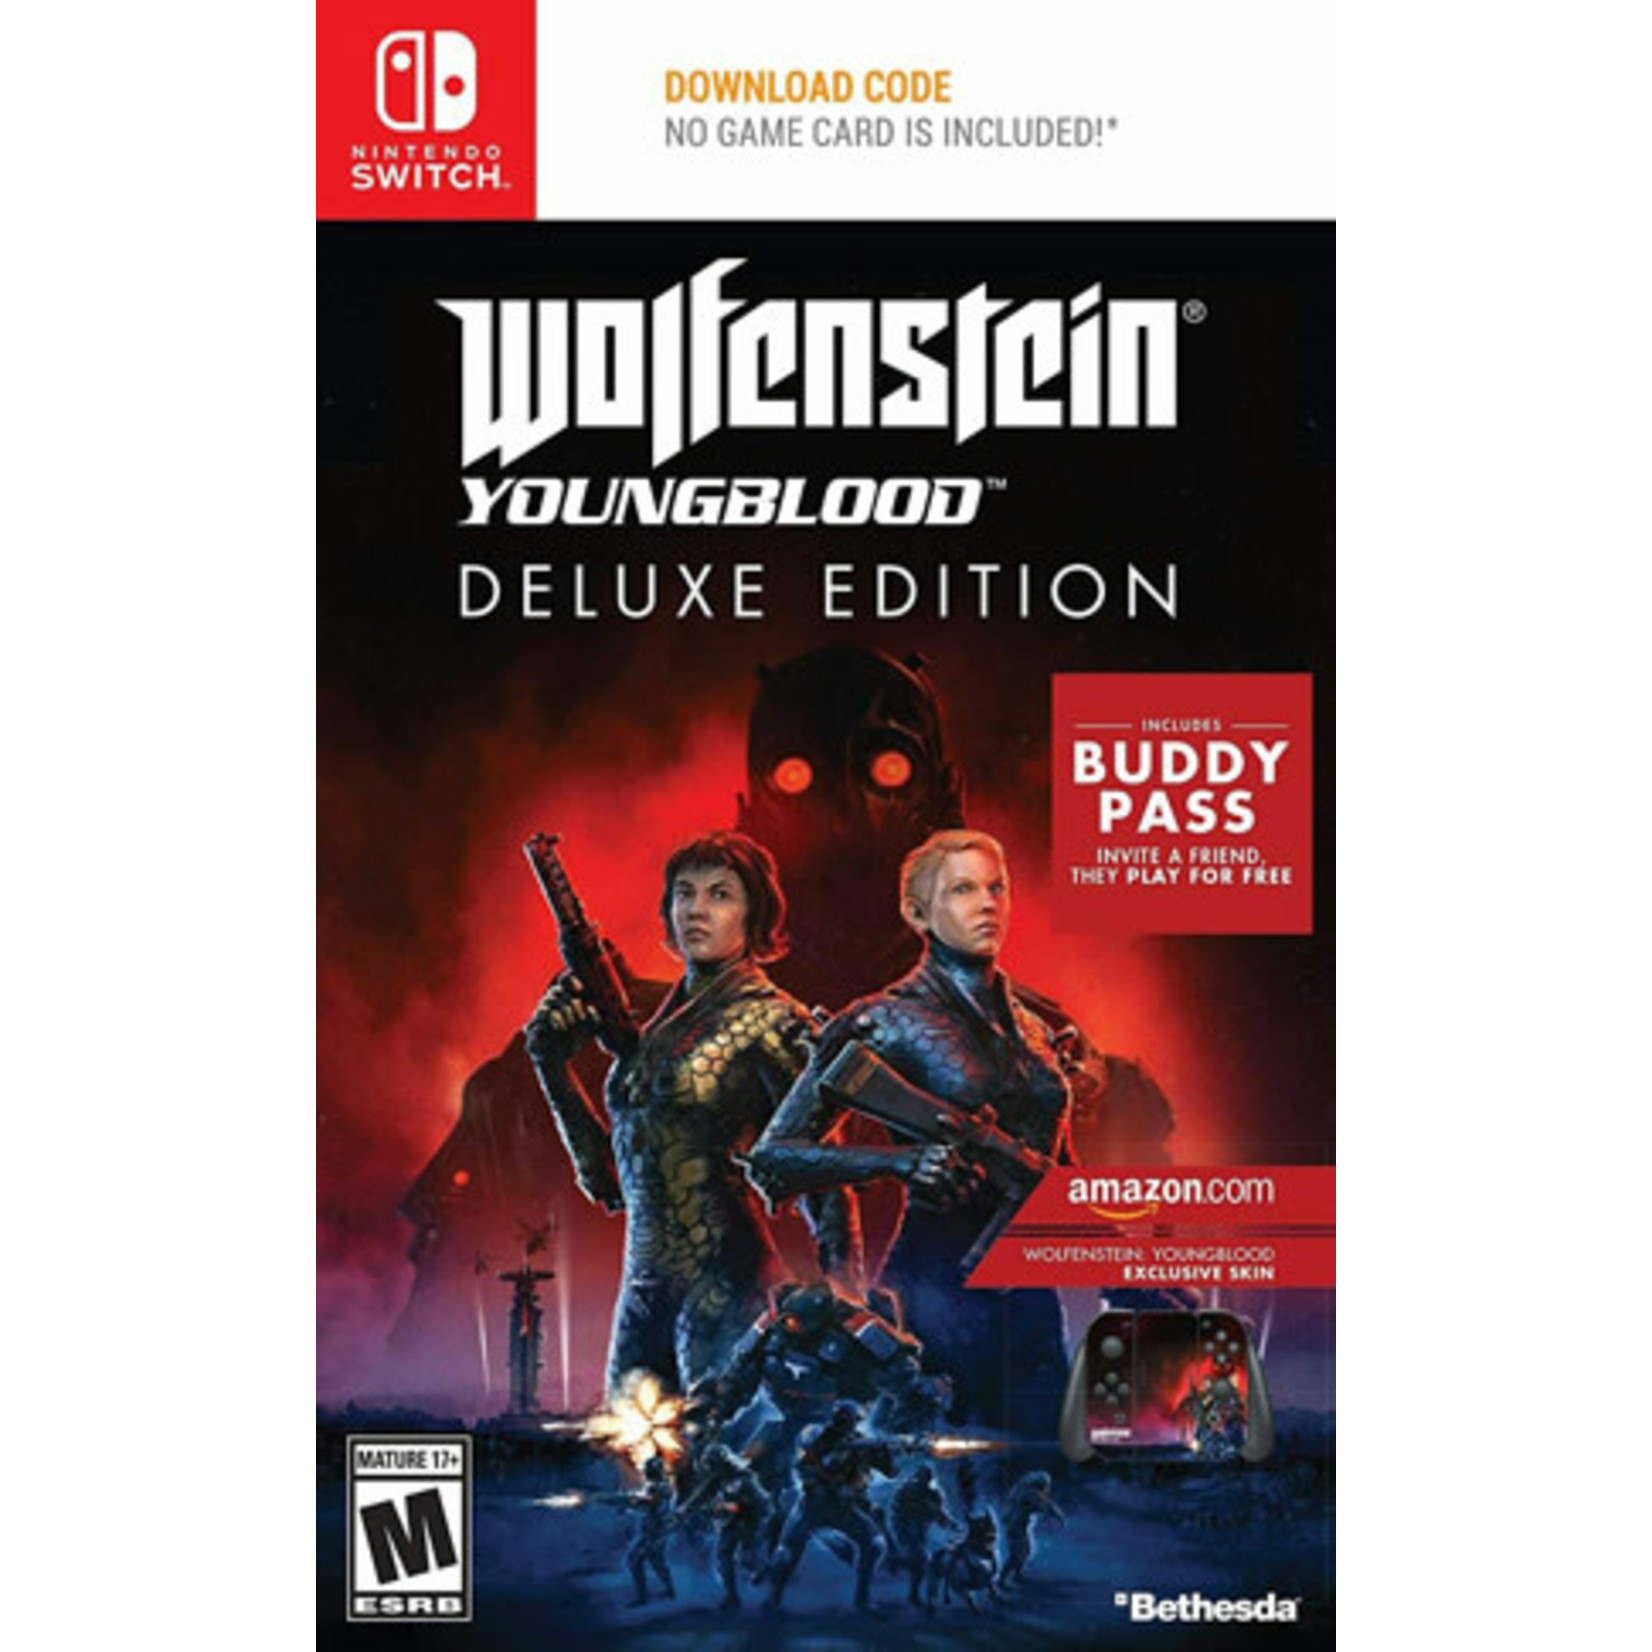 Switch-Wolfenstein: Youngblood Deluxe Edition